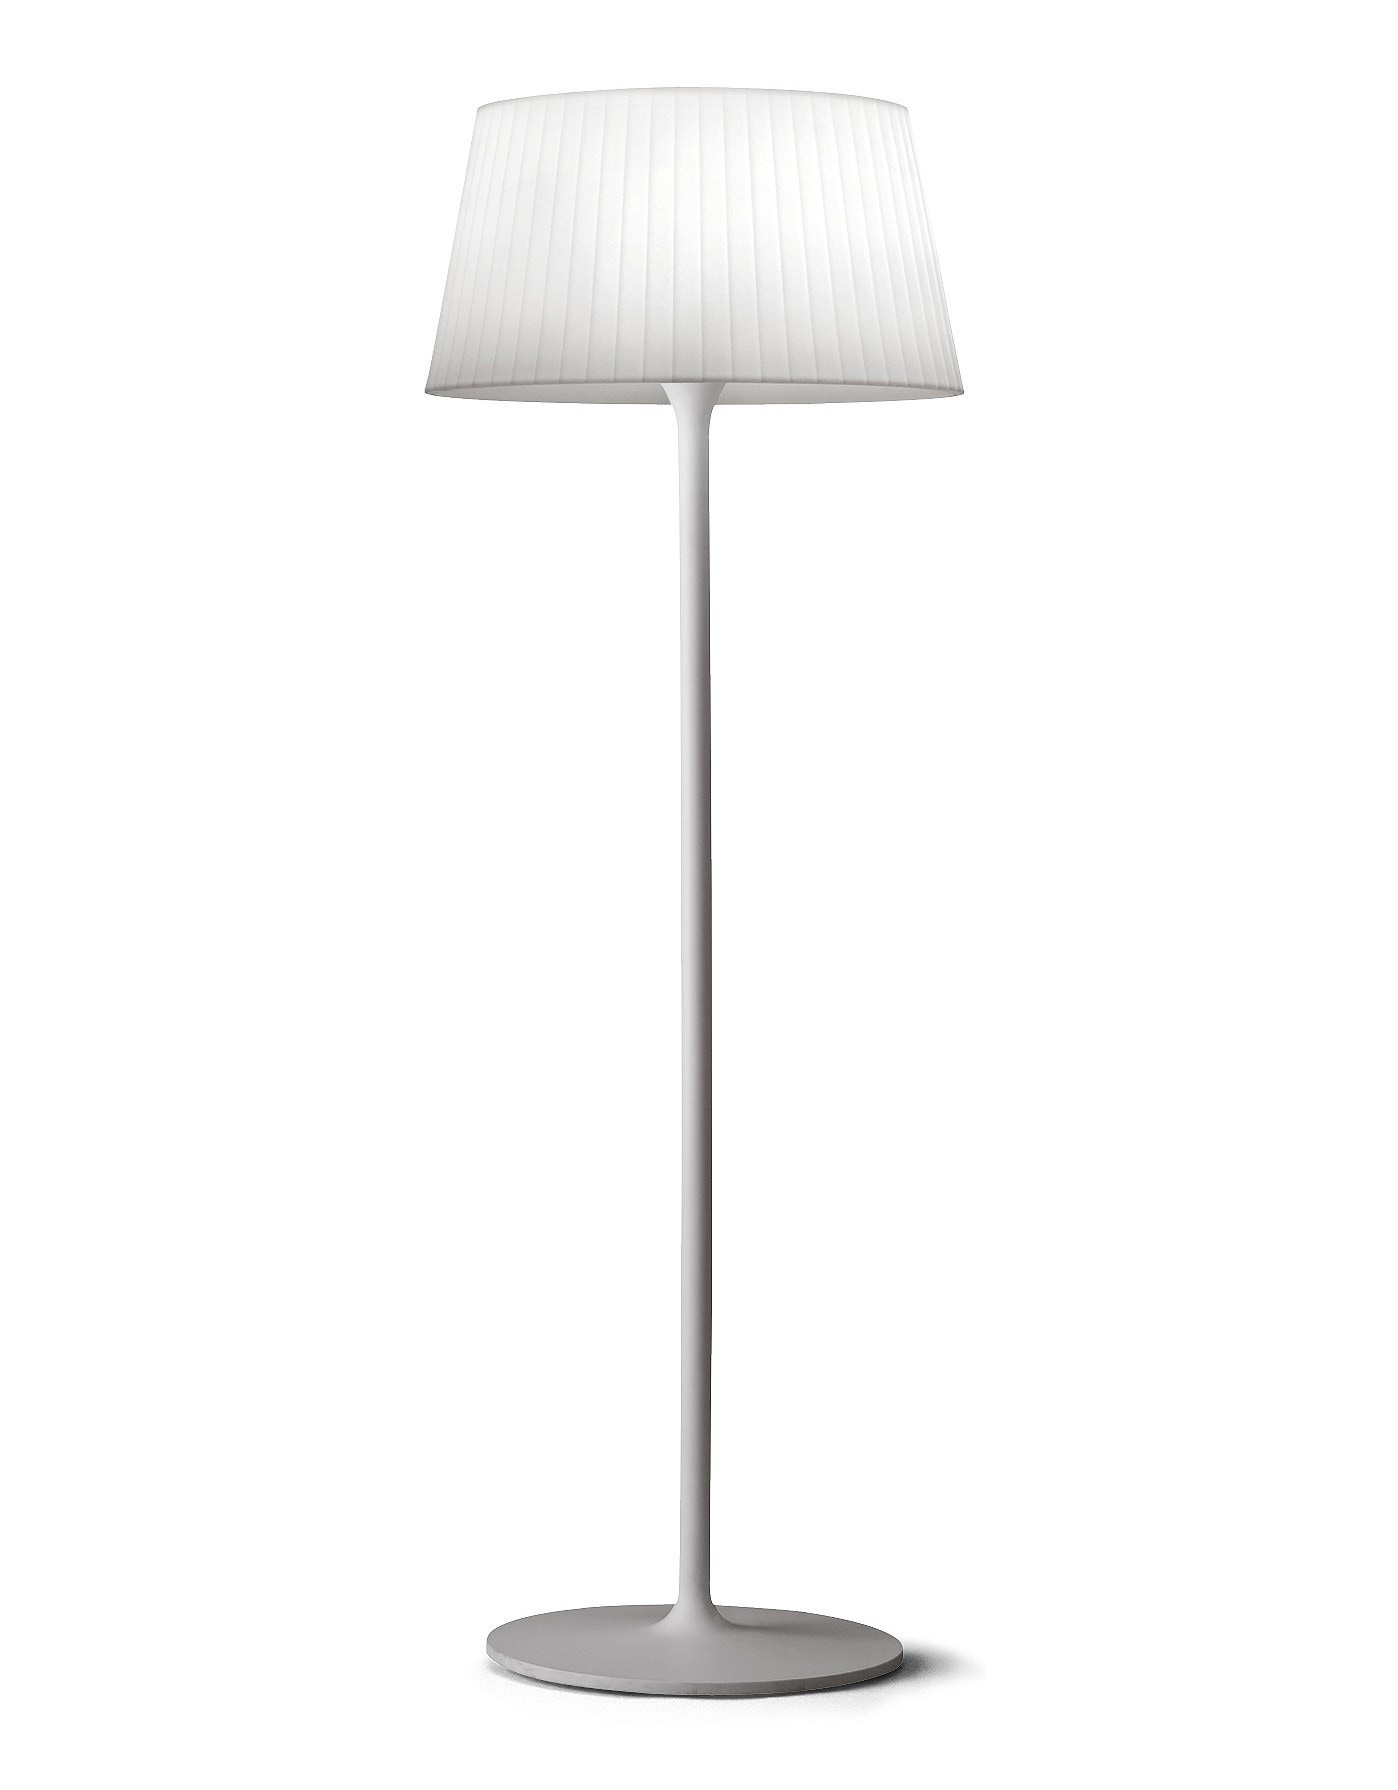 Vibia Plis 4030 Outdoor Floor Lamp